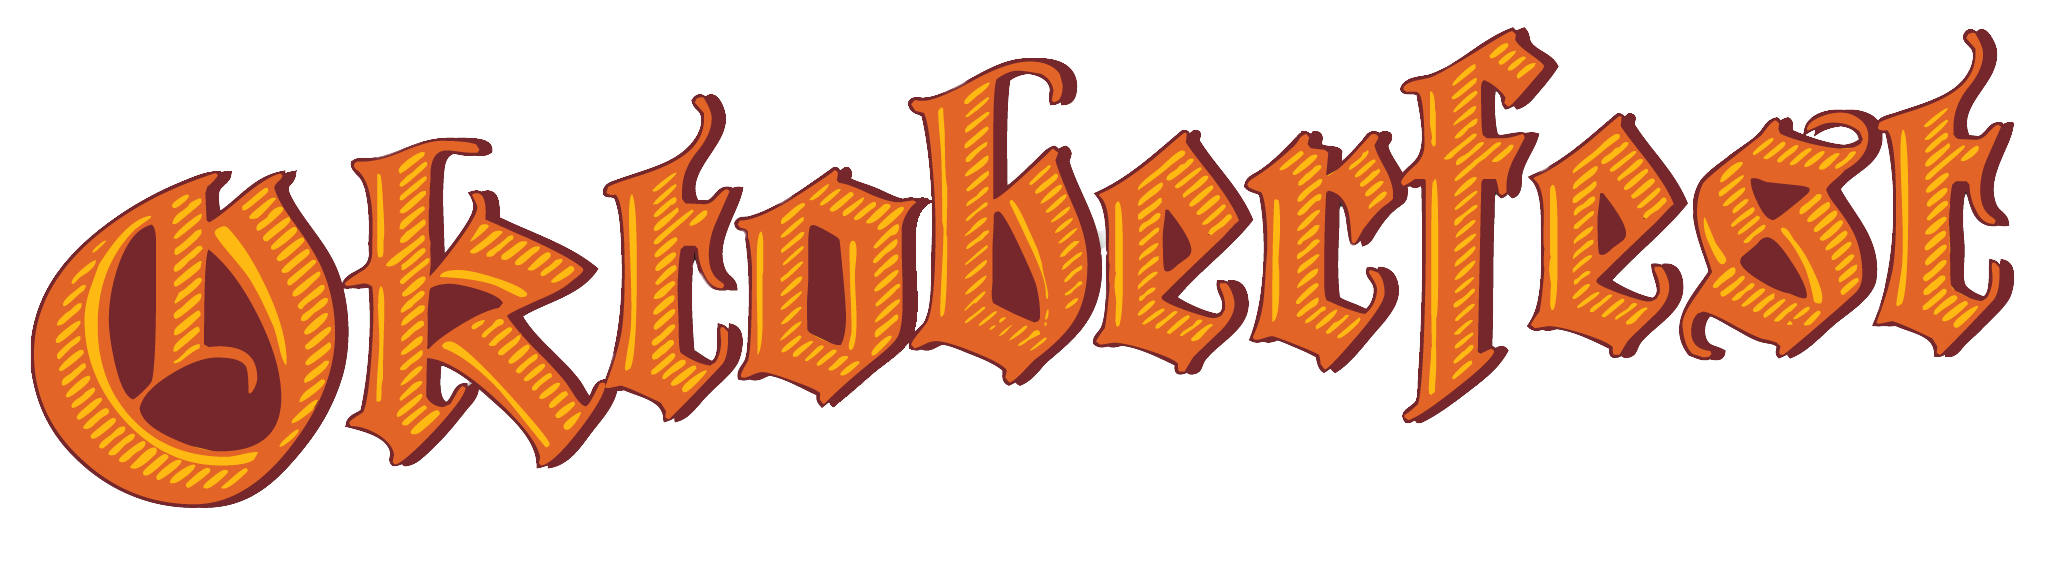 Want MORE Oktoberfest Logo_NO BG - Oktoberfest HD PNG